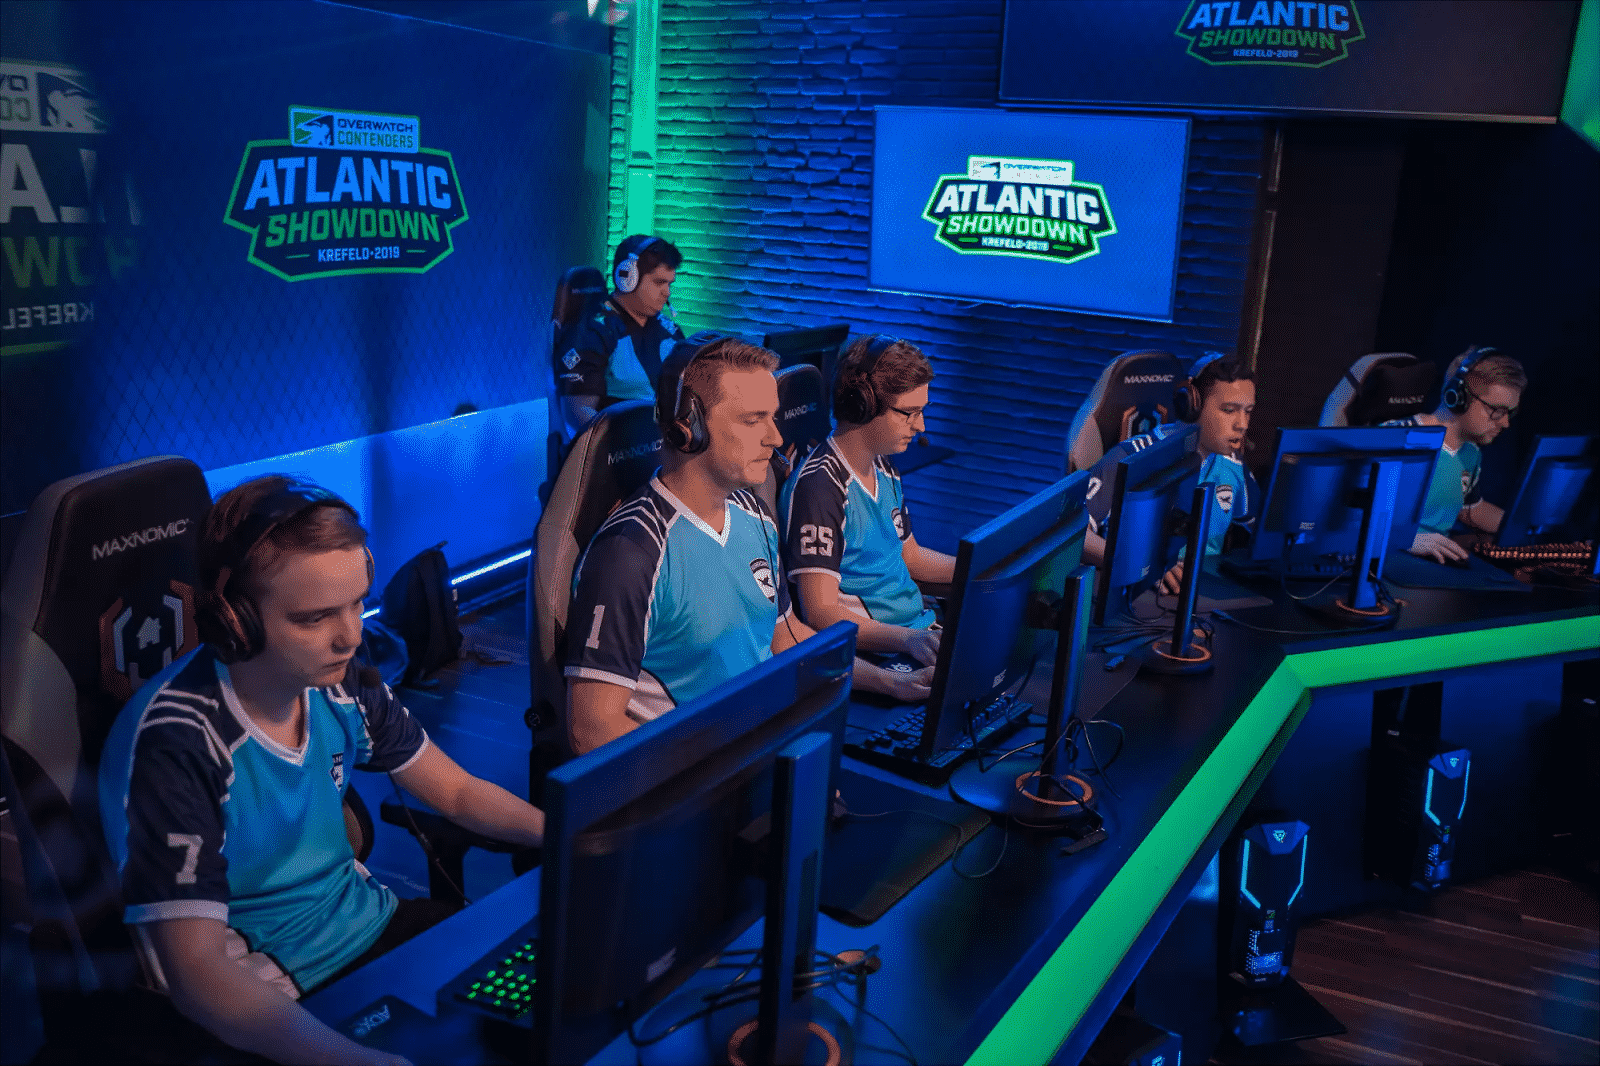 The London Spitfire's academy team, British Hurricane, behind their PC's during the Atlantic Showdown in 2019